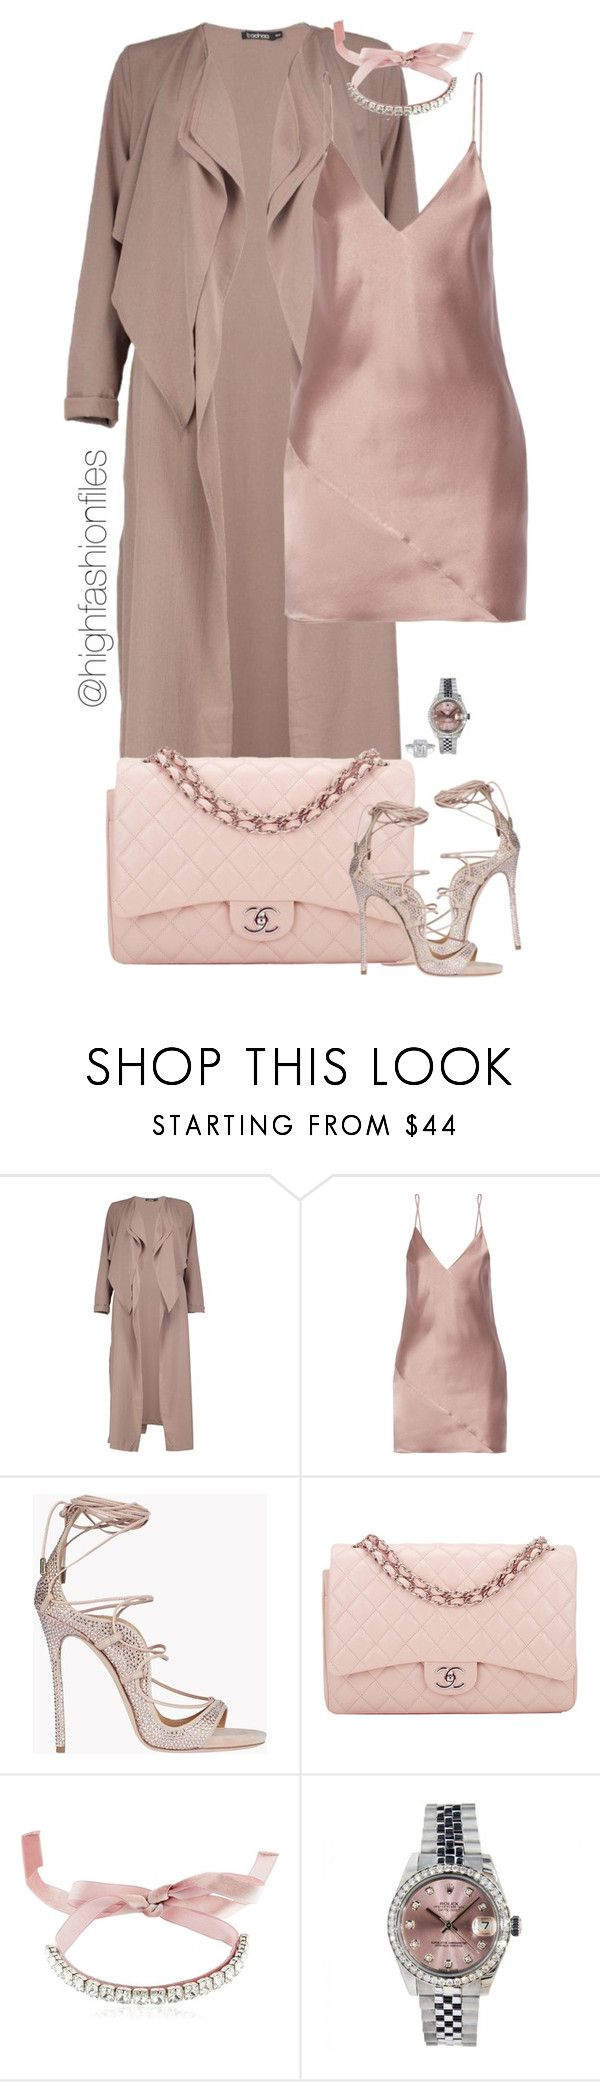 """Untitled #2745"" by highfashionfiles ❤ liked on Polyvore featuring Boohoo, Fleur du Mal, Dsquared2, Chanel, Giuseppe Zanotti and Rolex"